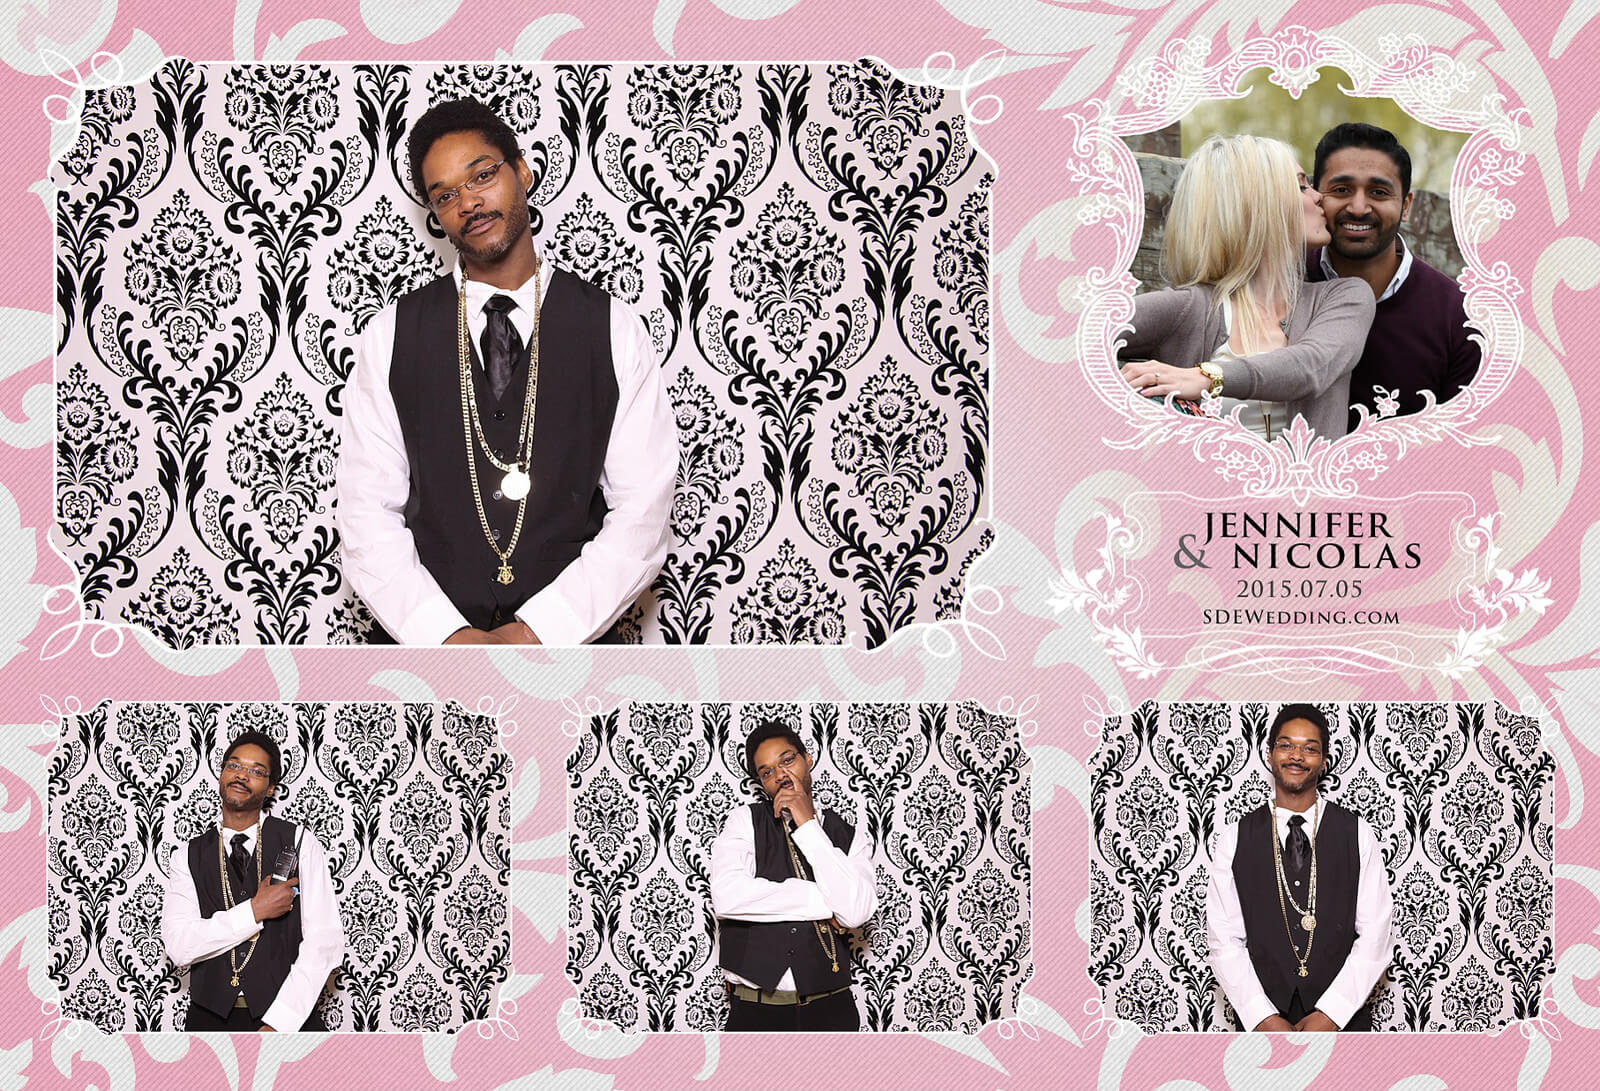 Toronto Liberty Grand Wedding Reception Photo Booth Rental 10